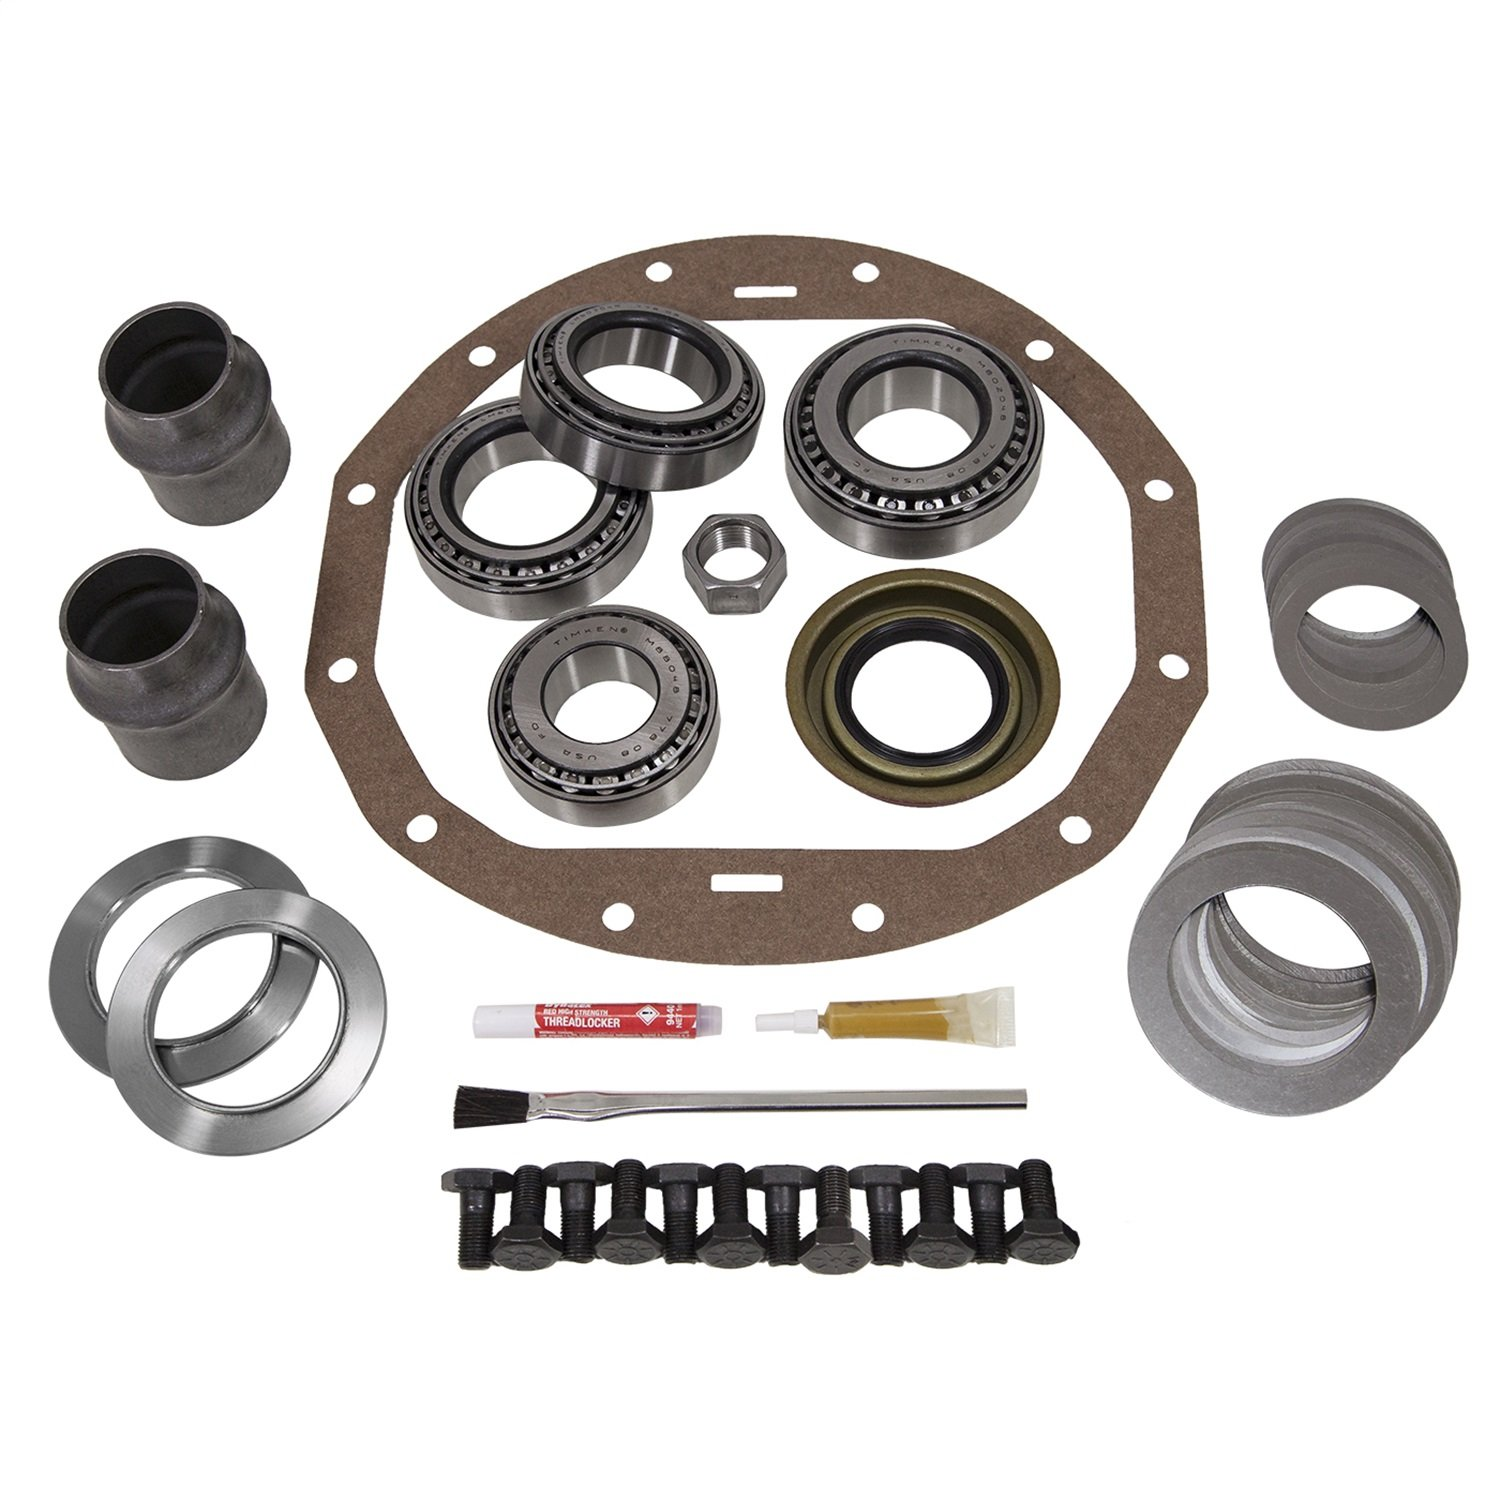 USA Standard Gear (ZK GM12P) Master Overhaul Kit for GM 12-Bolt Passenger Car Differential